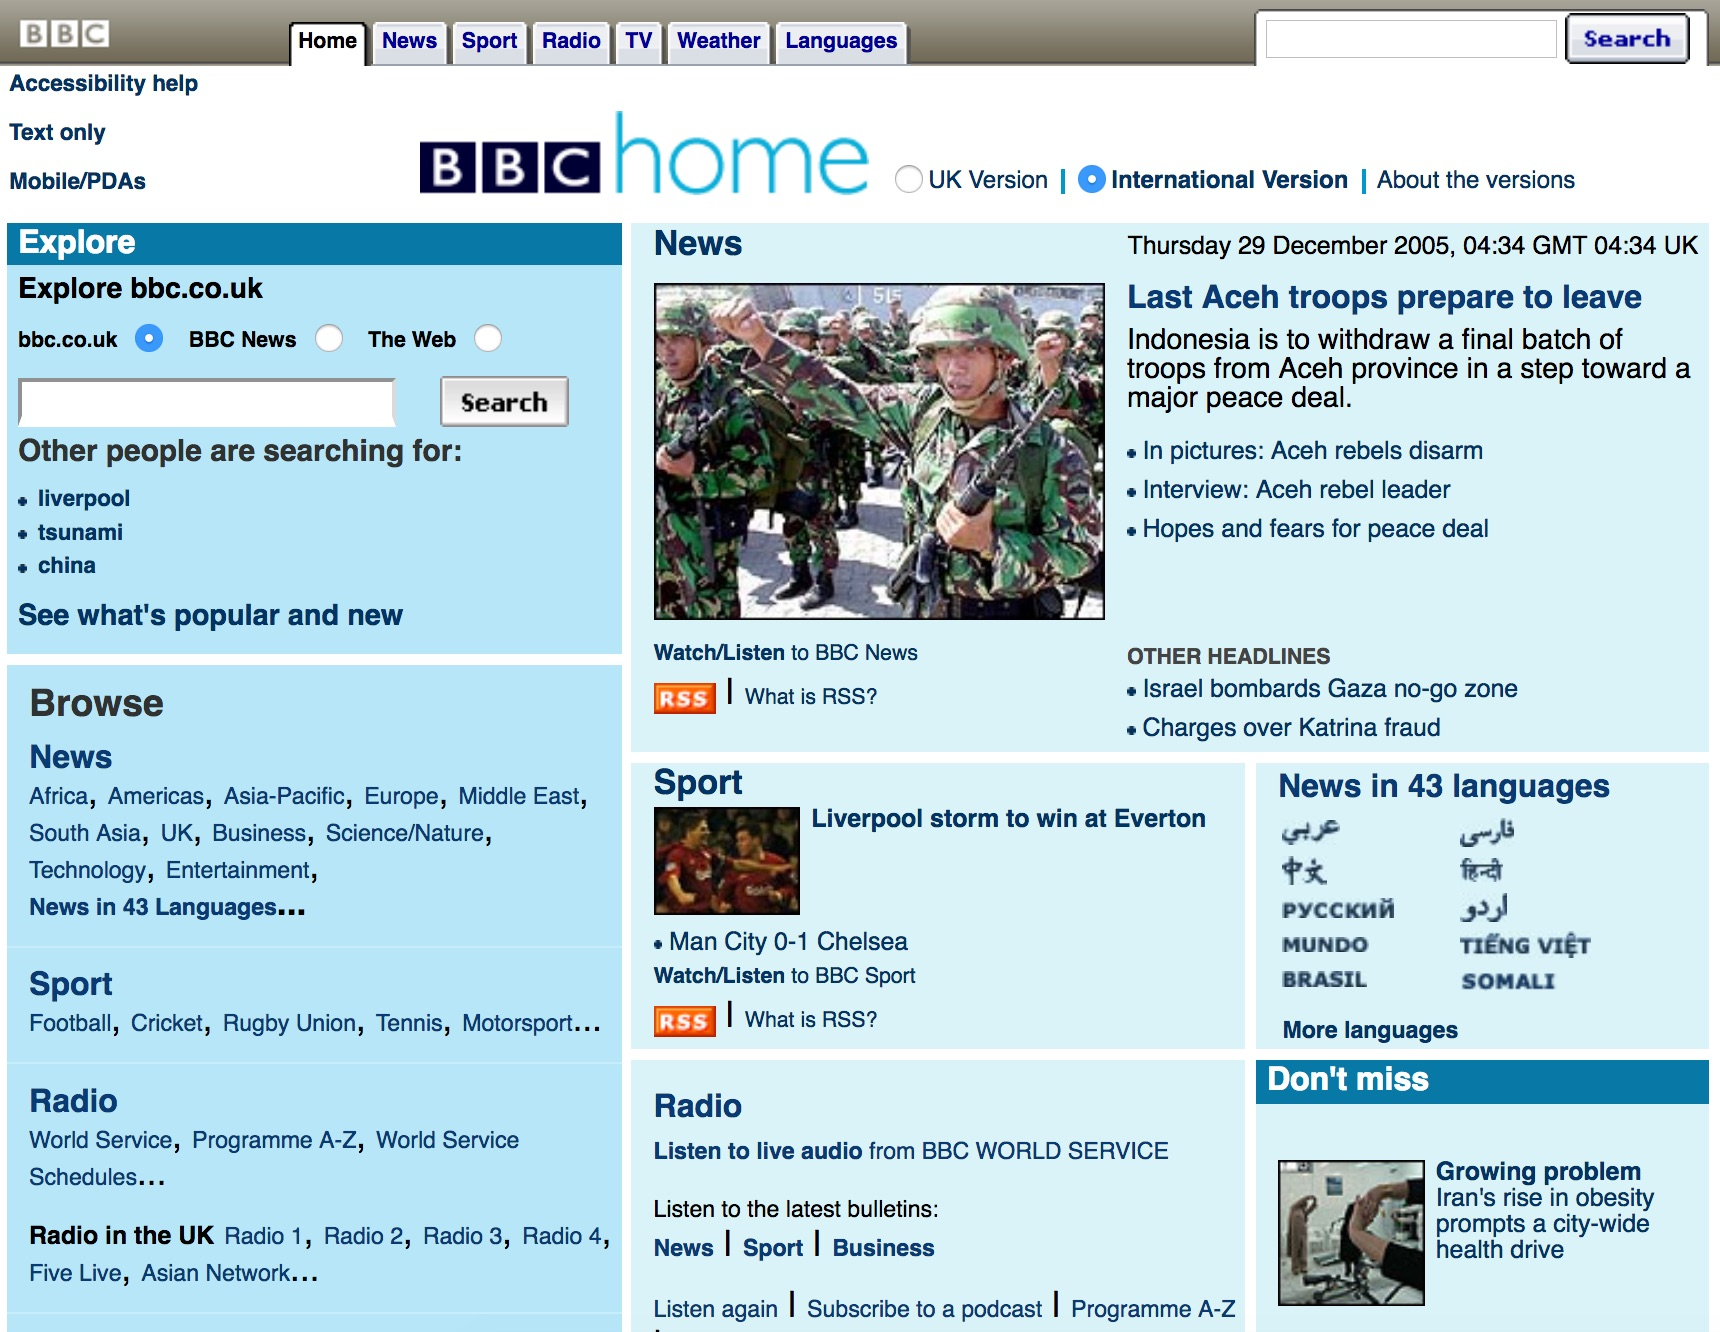 BBC.co.uk homepage (2005)